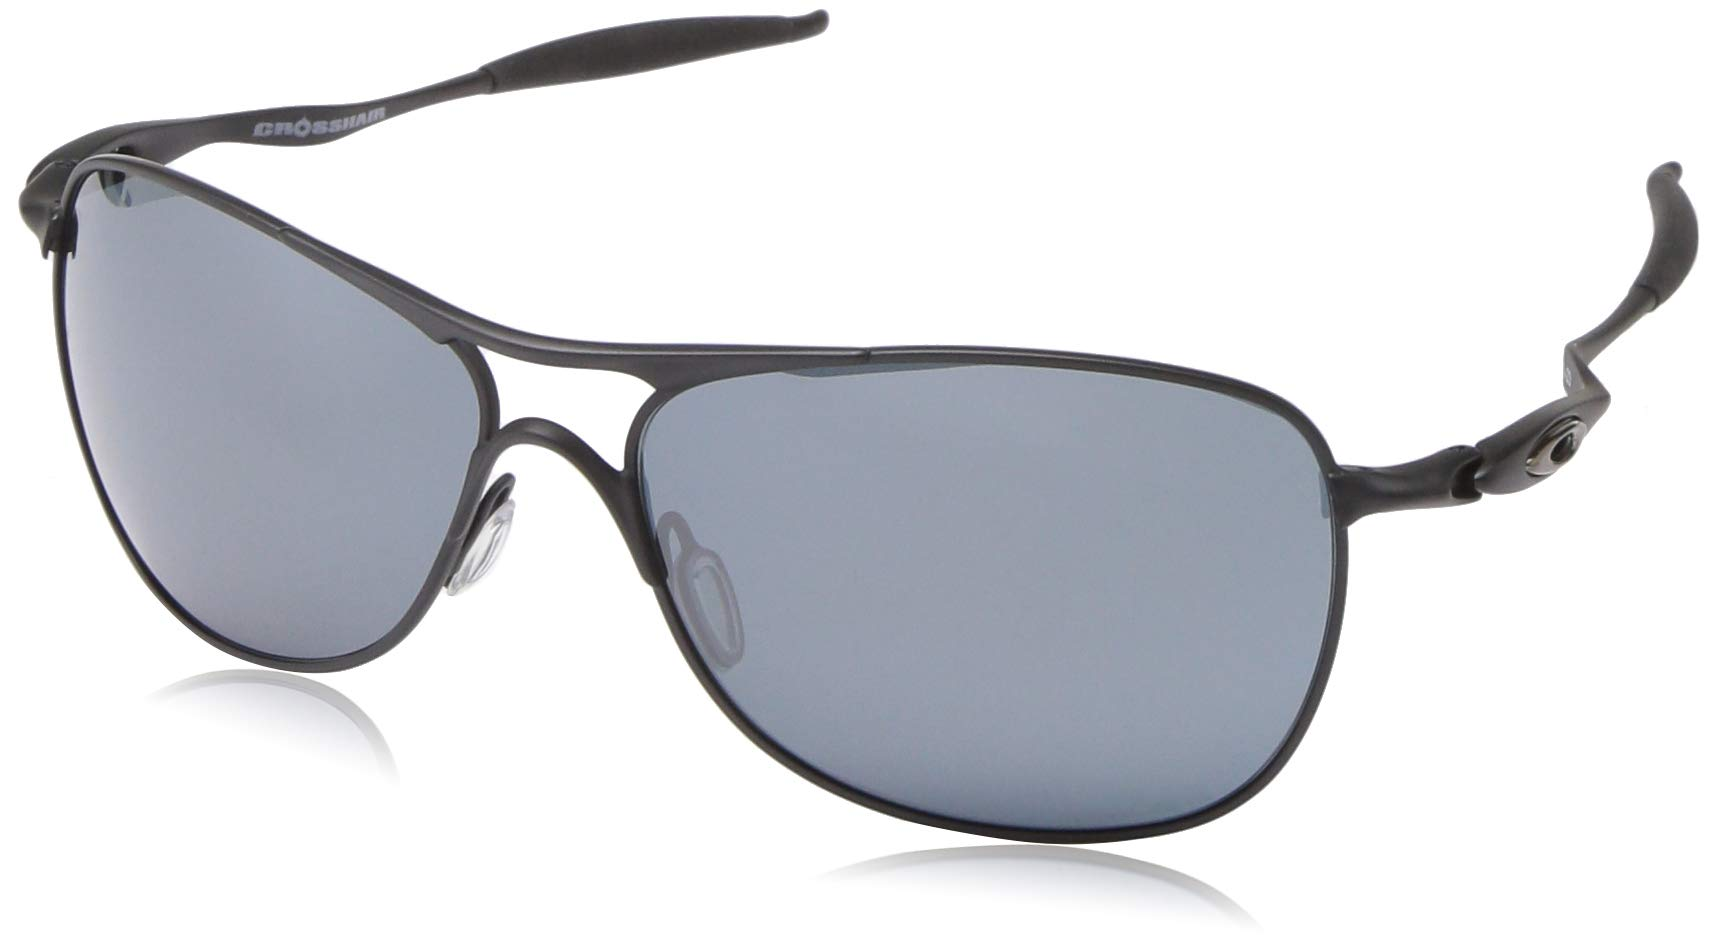 Oakley Men's OO4060 Crosshair Aviator Metal Sunglasses, Matte Black/Prizm Black, 61 mm by Oakley